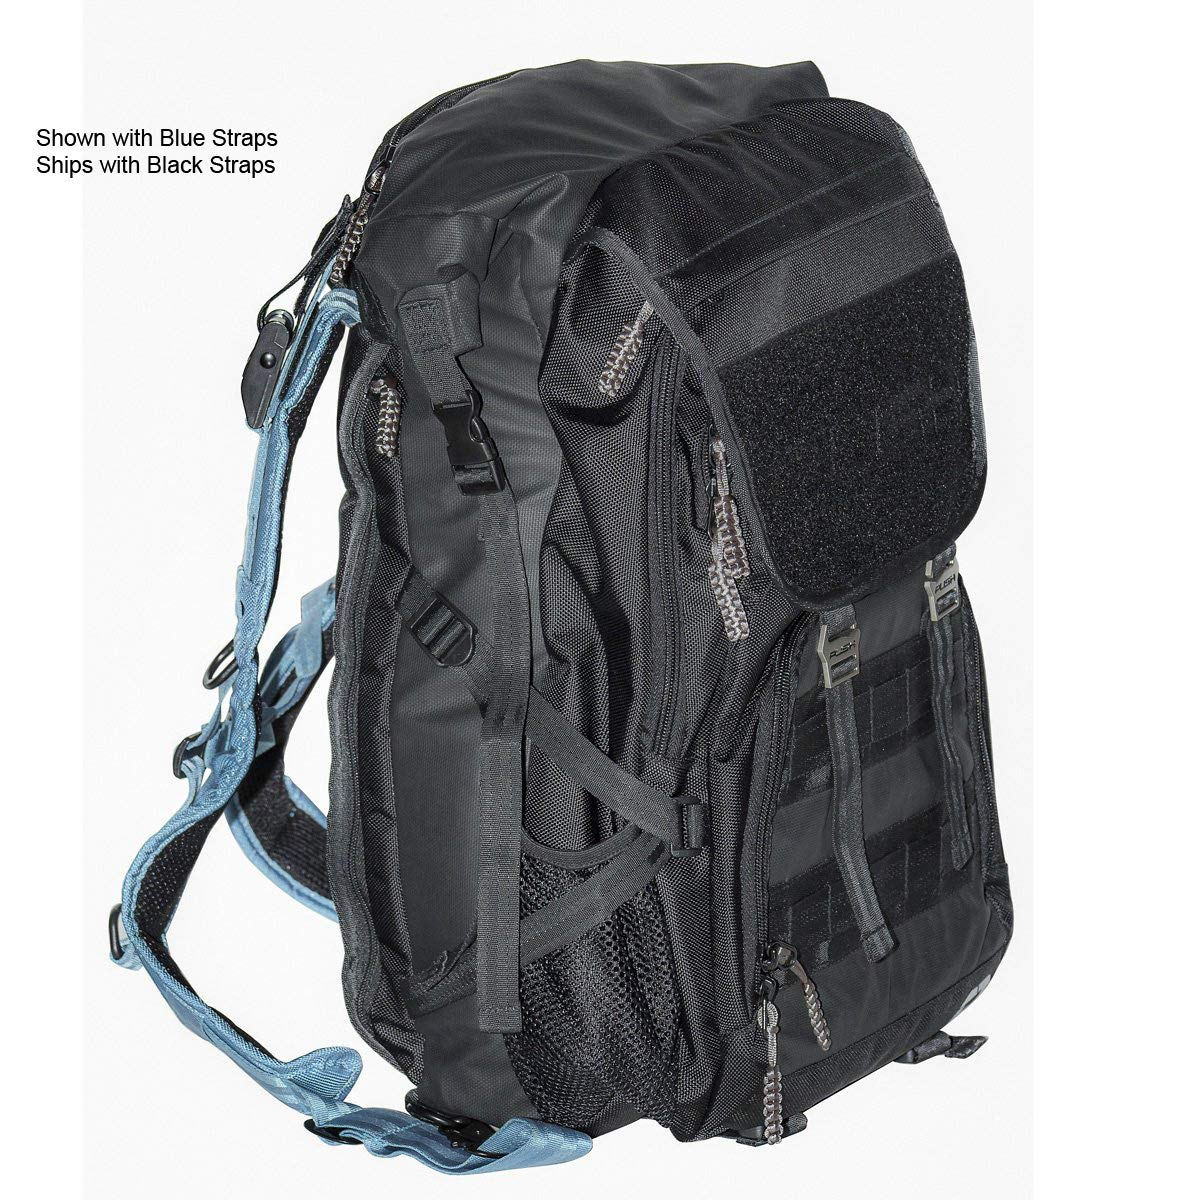 Push Division One Backpack Paintball Gear Bag - Black w/Black Straps